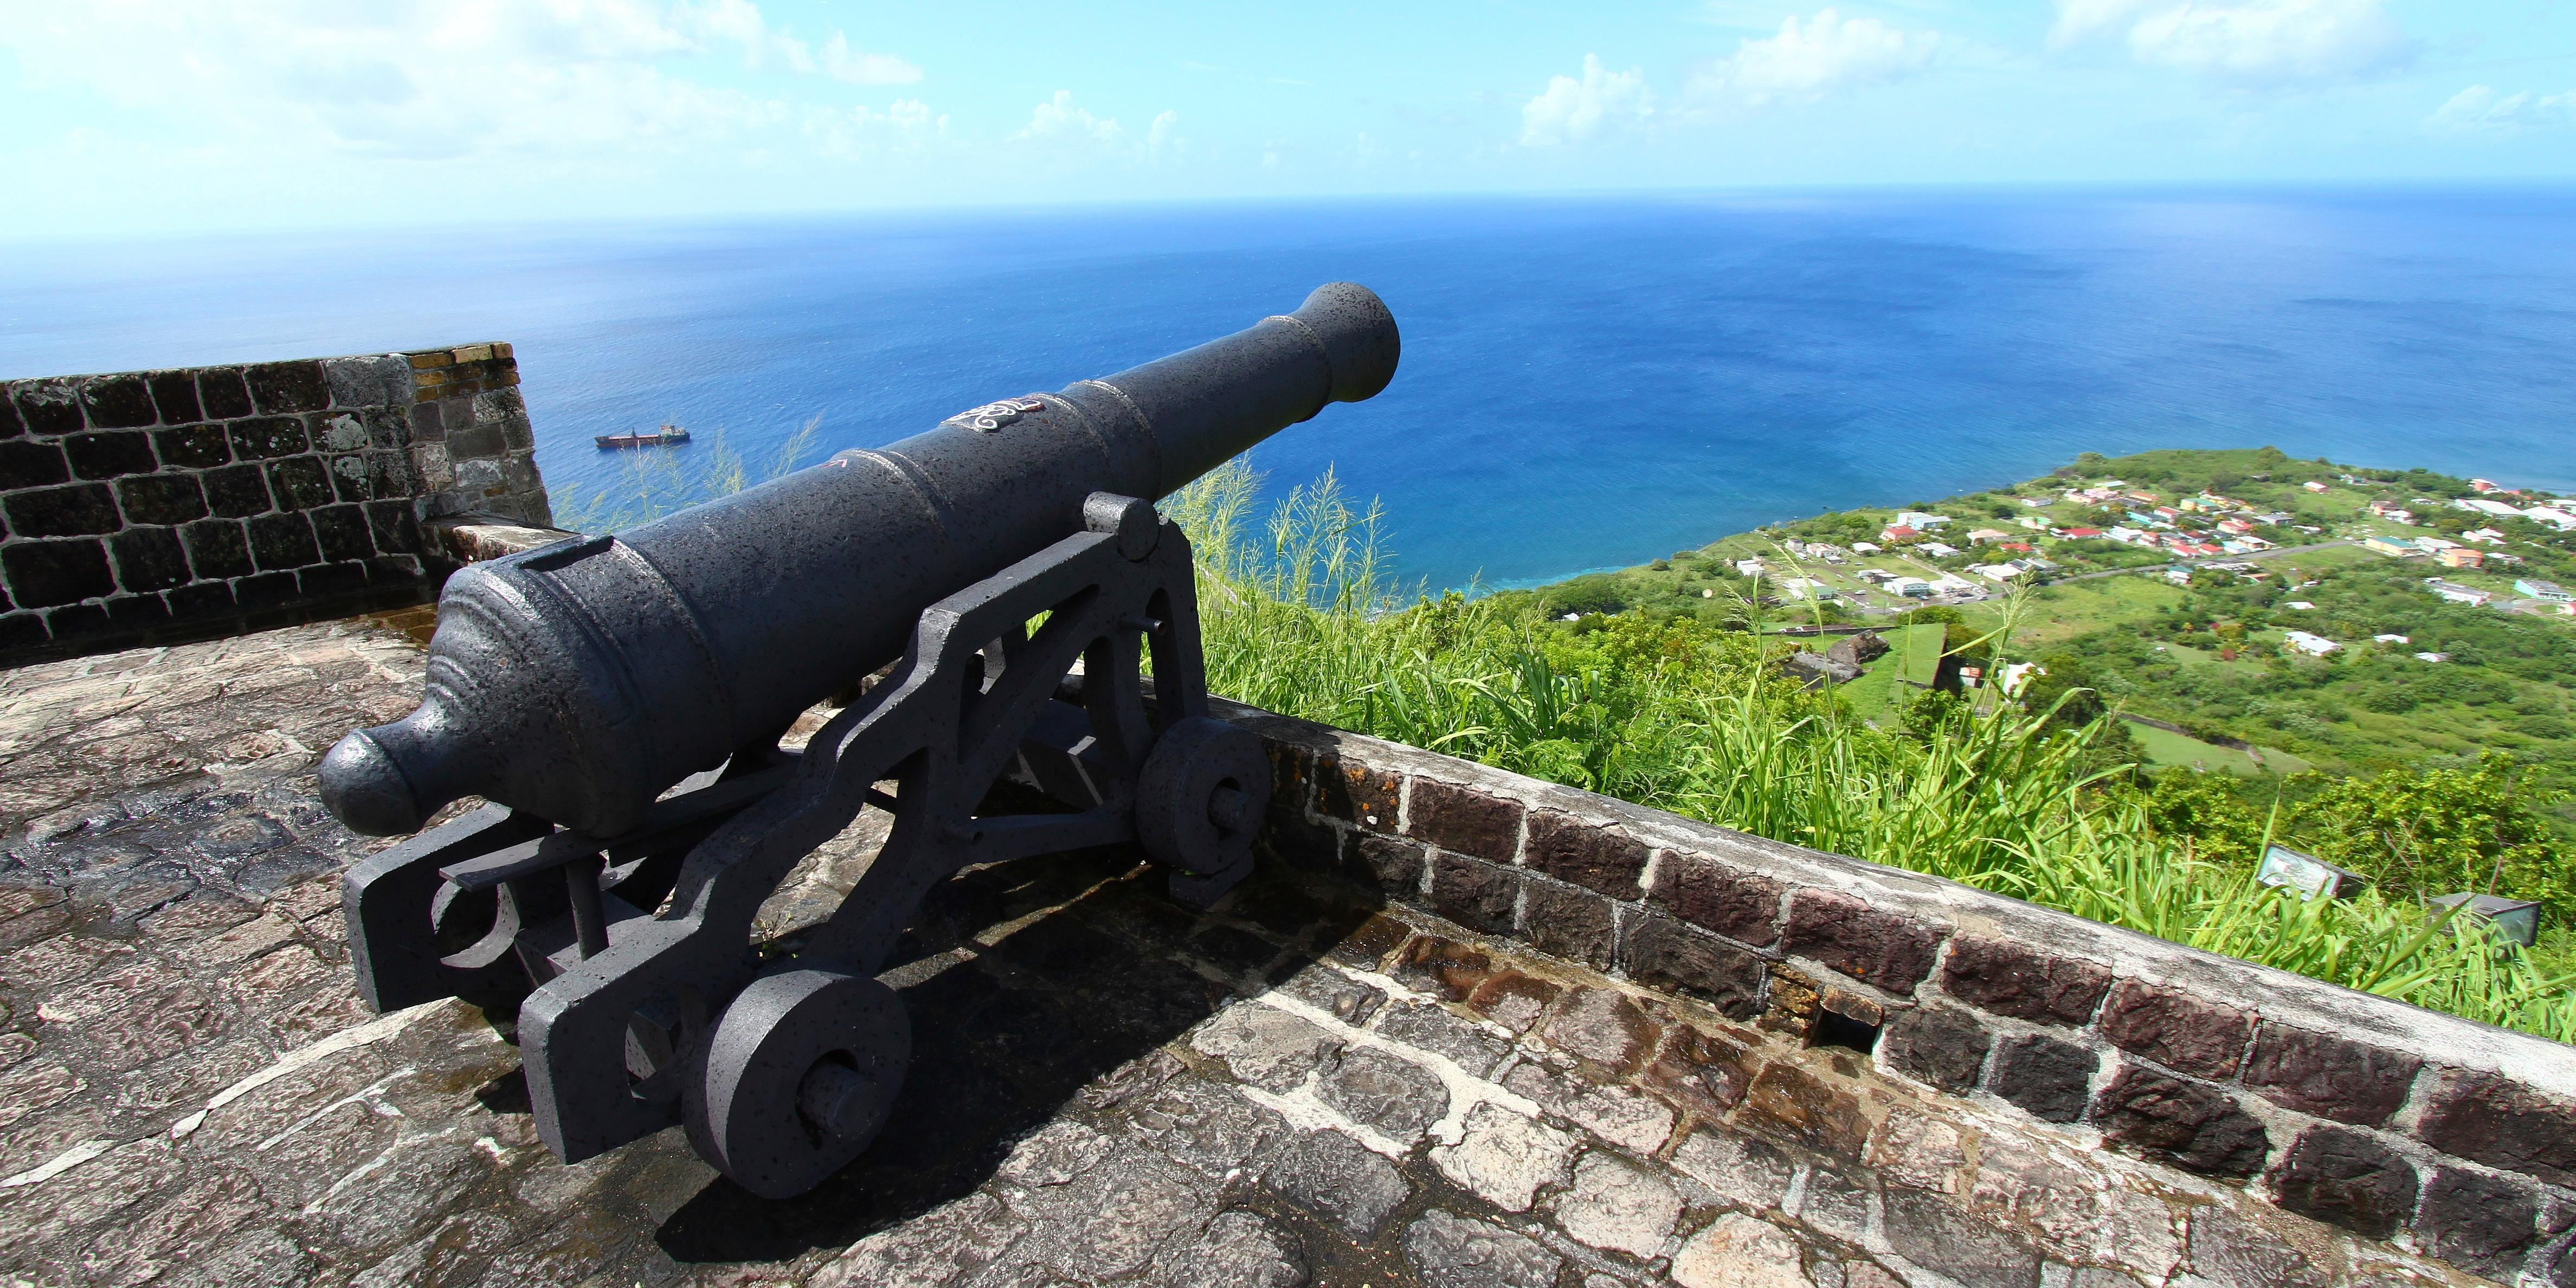 How to Spend 3 Days in St. Kitts